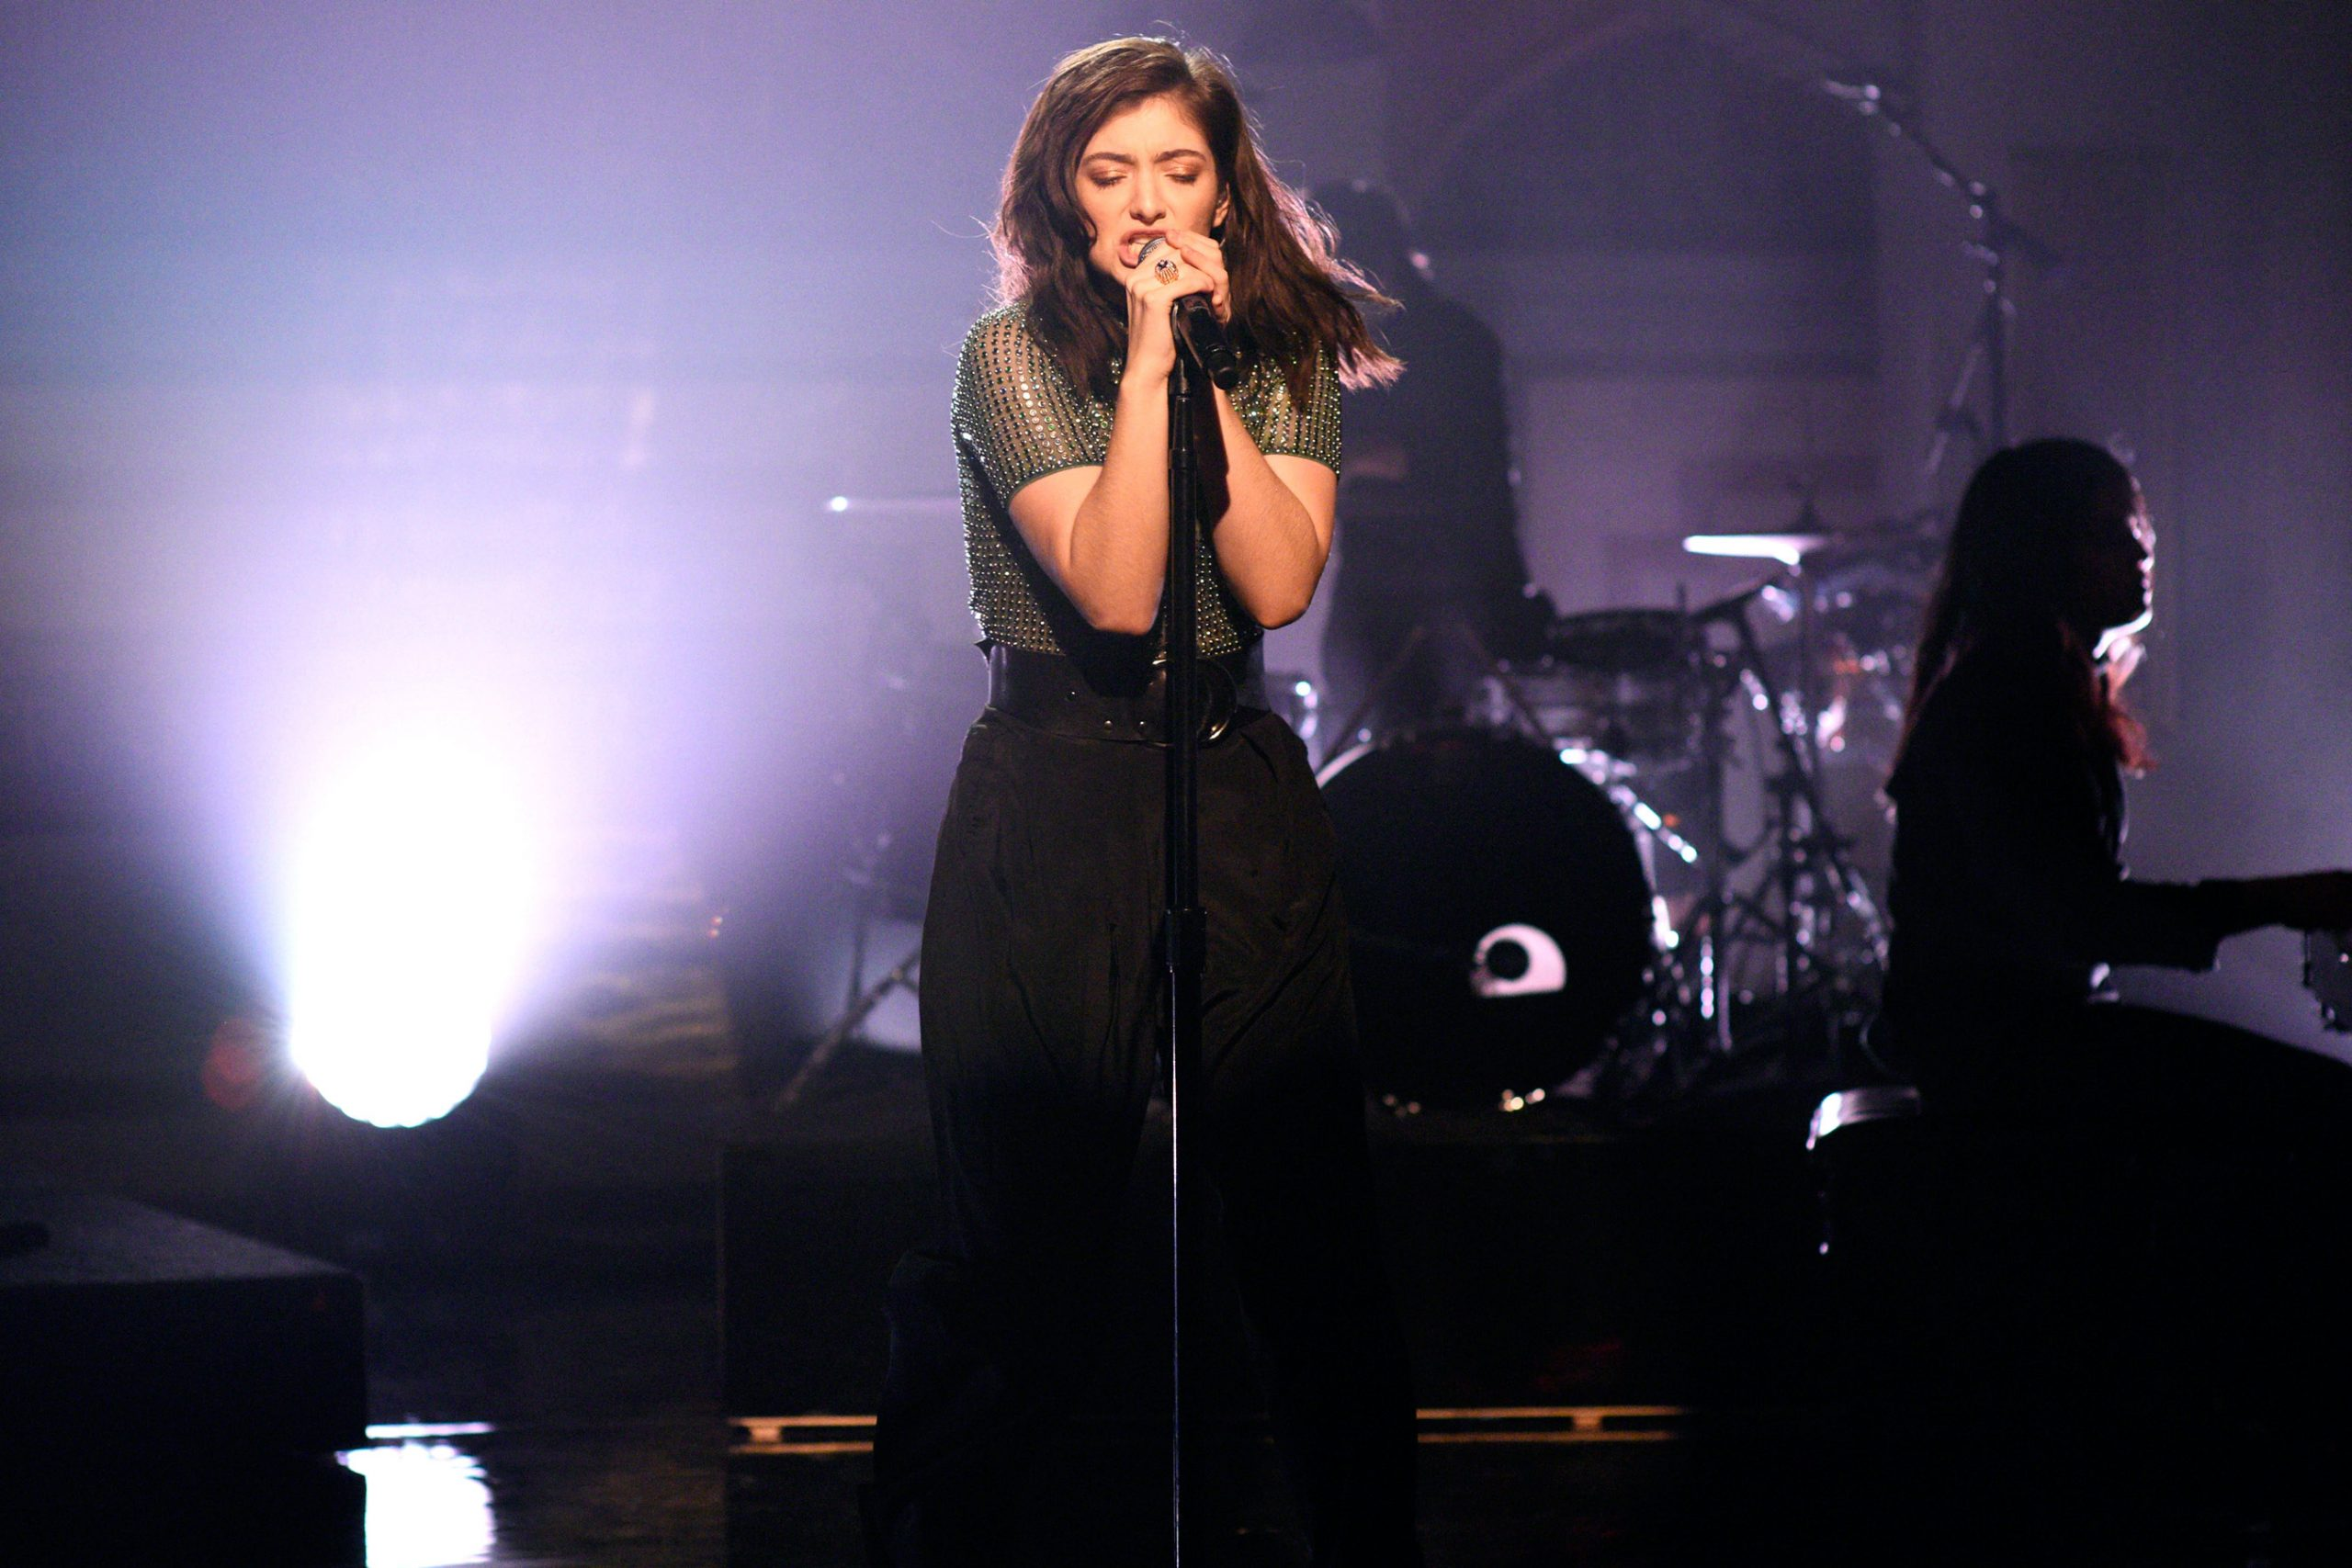 Lorde's dancing skills and more